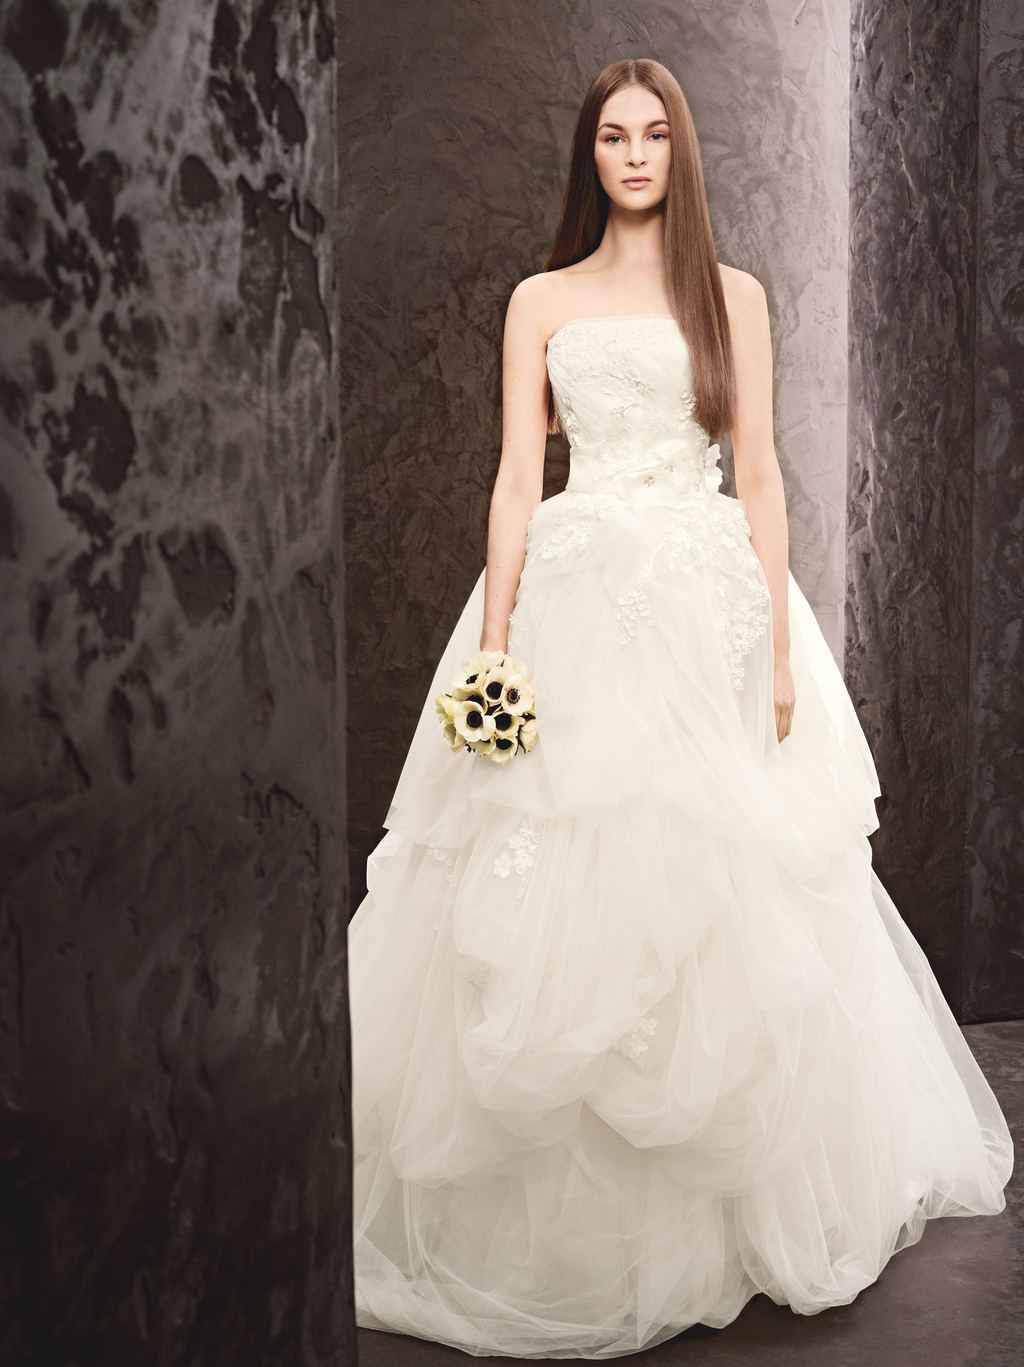 Spring-2013-wedding-dress-white-by-vera-wang-bridal-gowns-style-vw351162.full